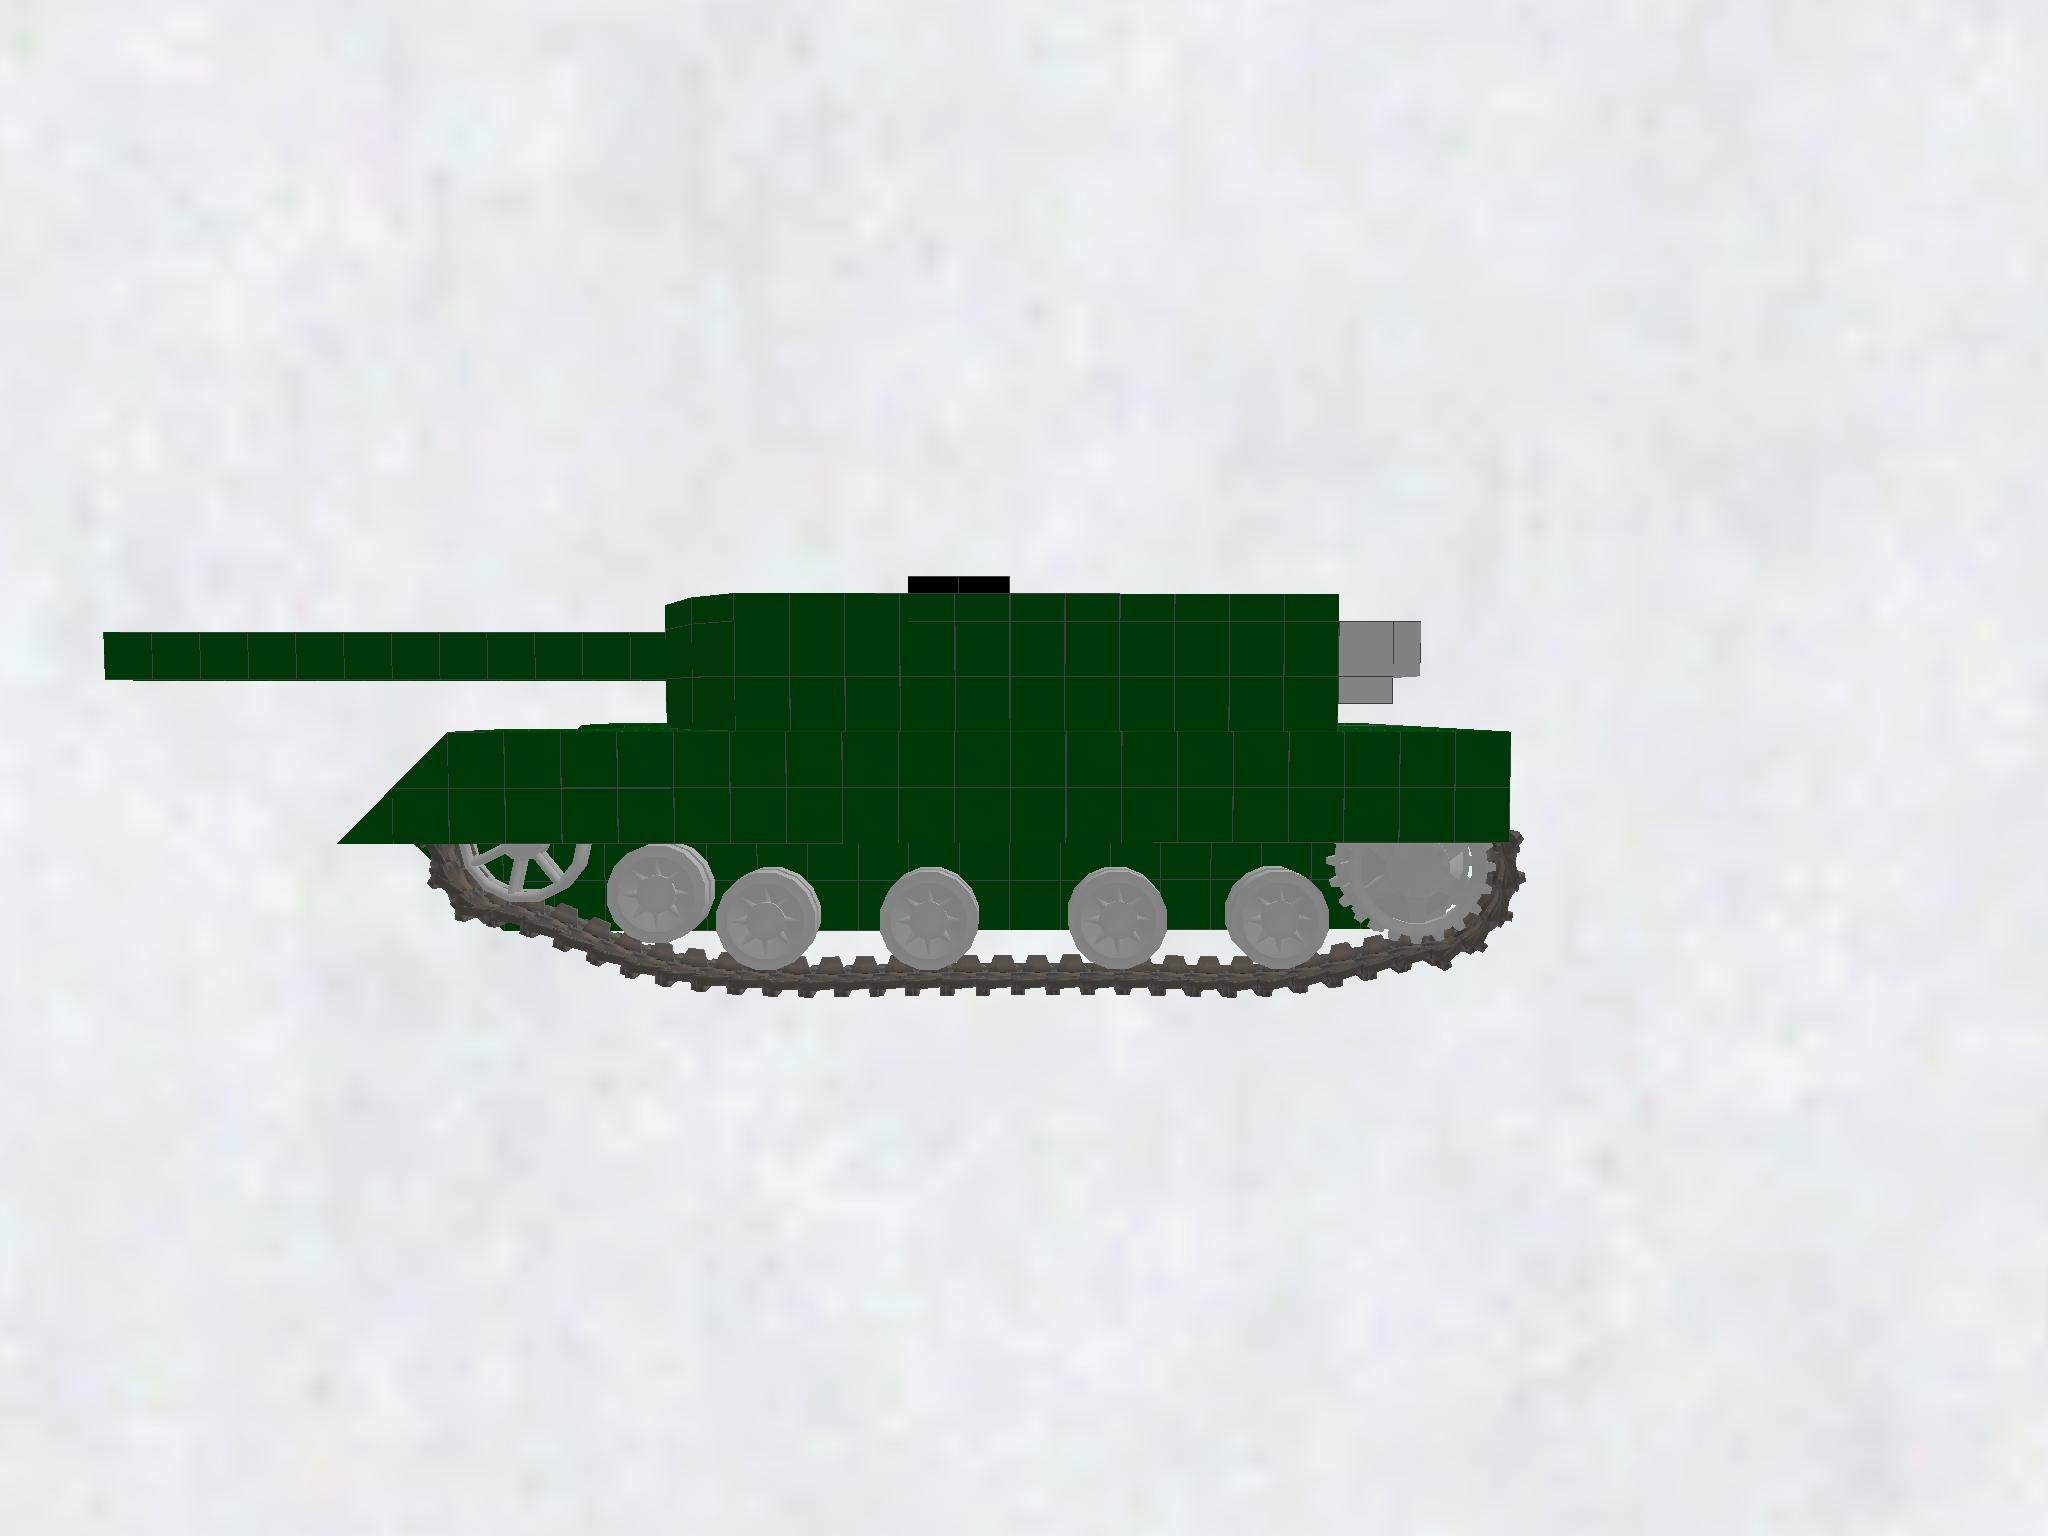 PMF type-35MBT (履帯)